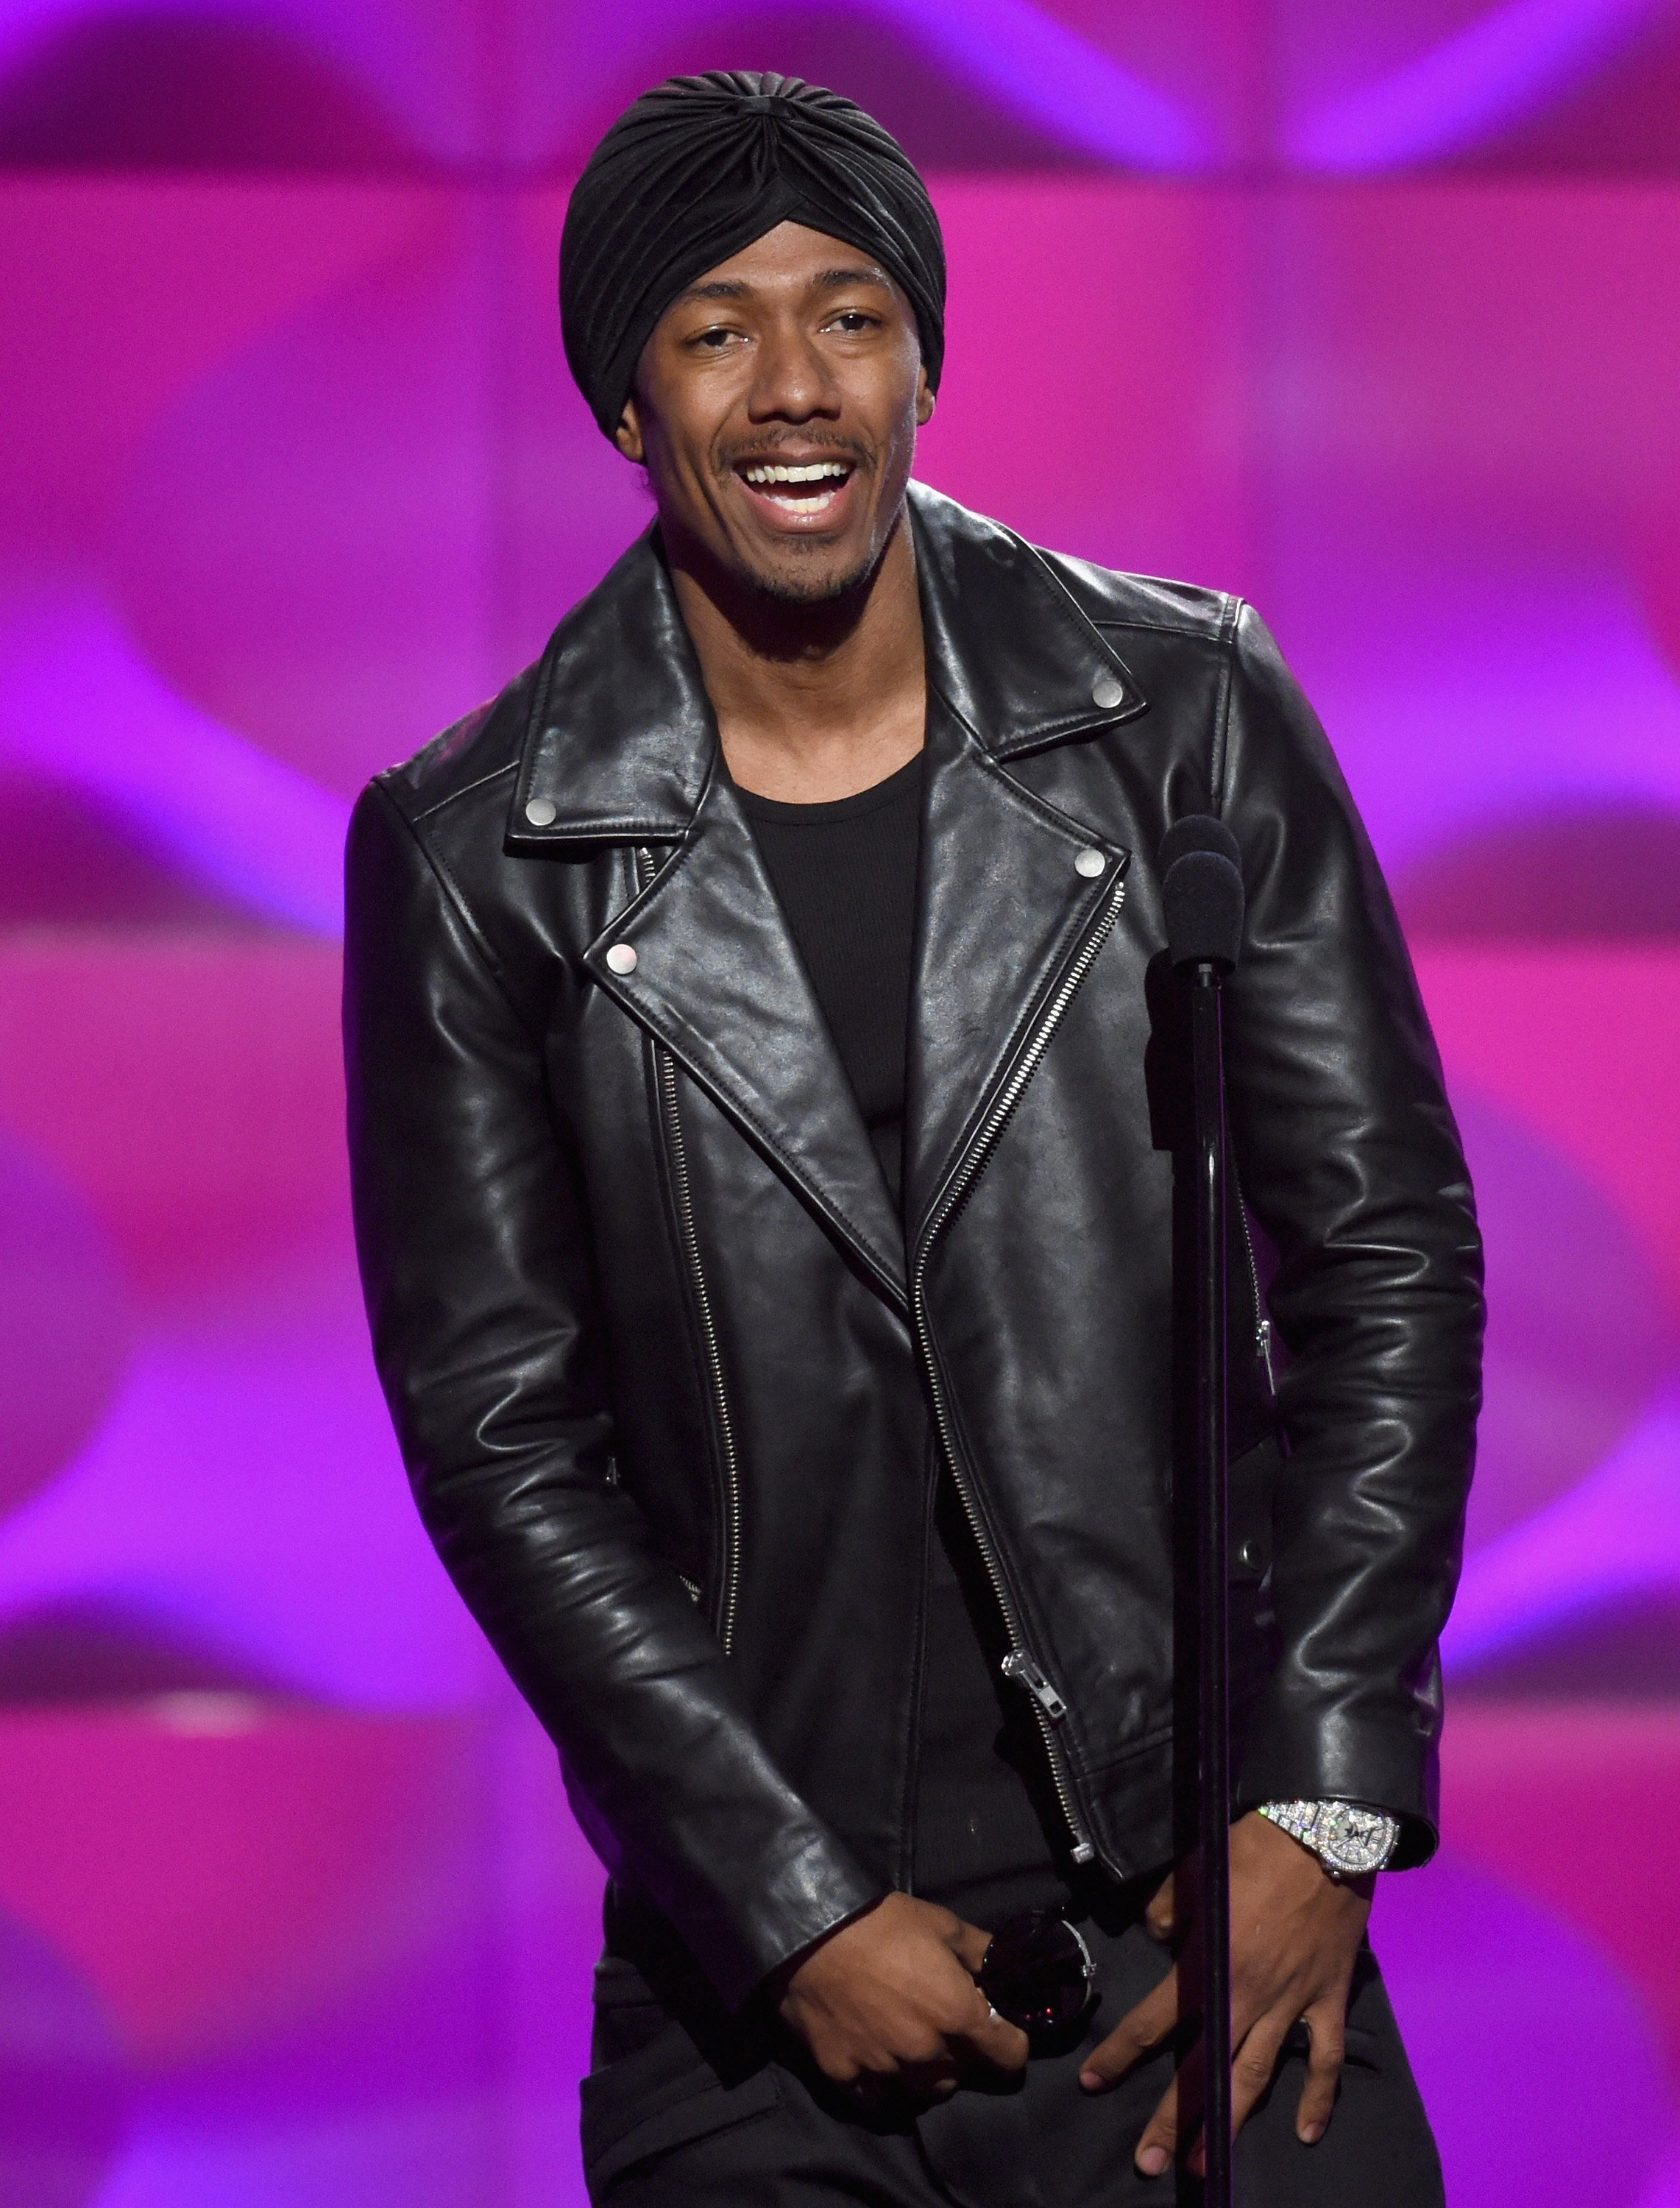 Nick Cannon on stage at the 2017 Billboard Women in Music event in November 2017. | Photo: Getty Images